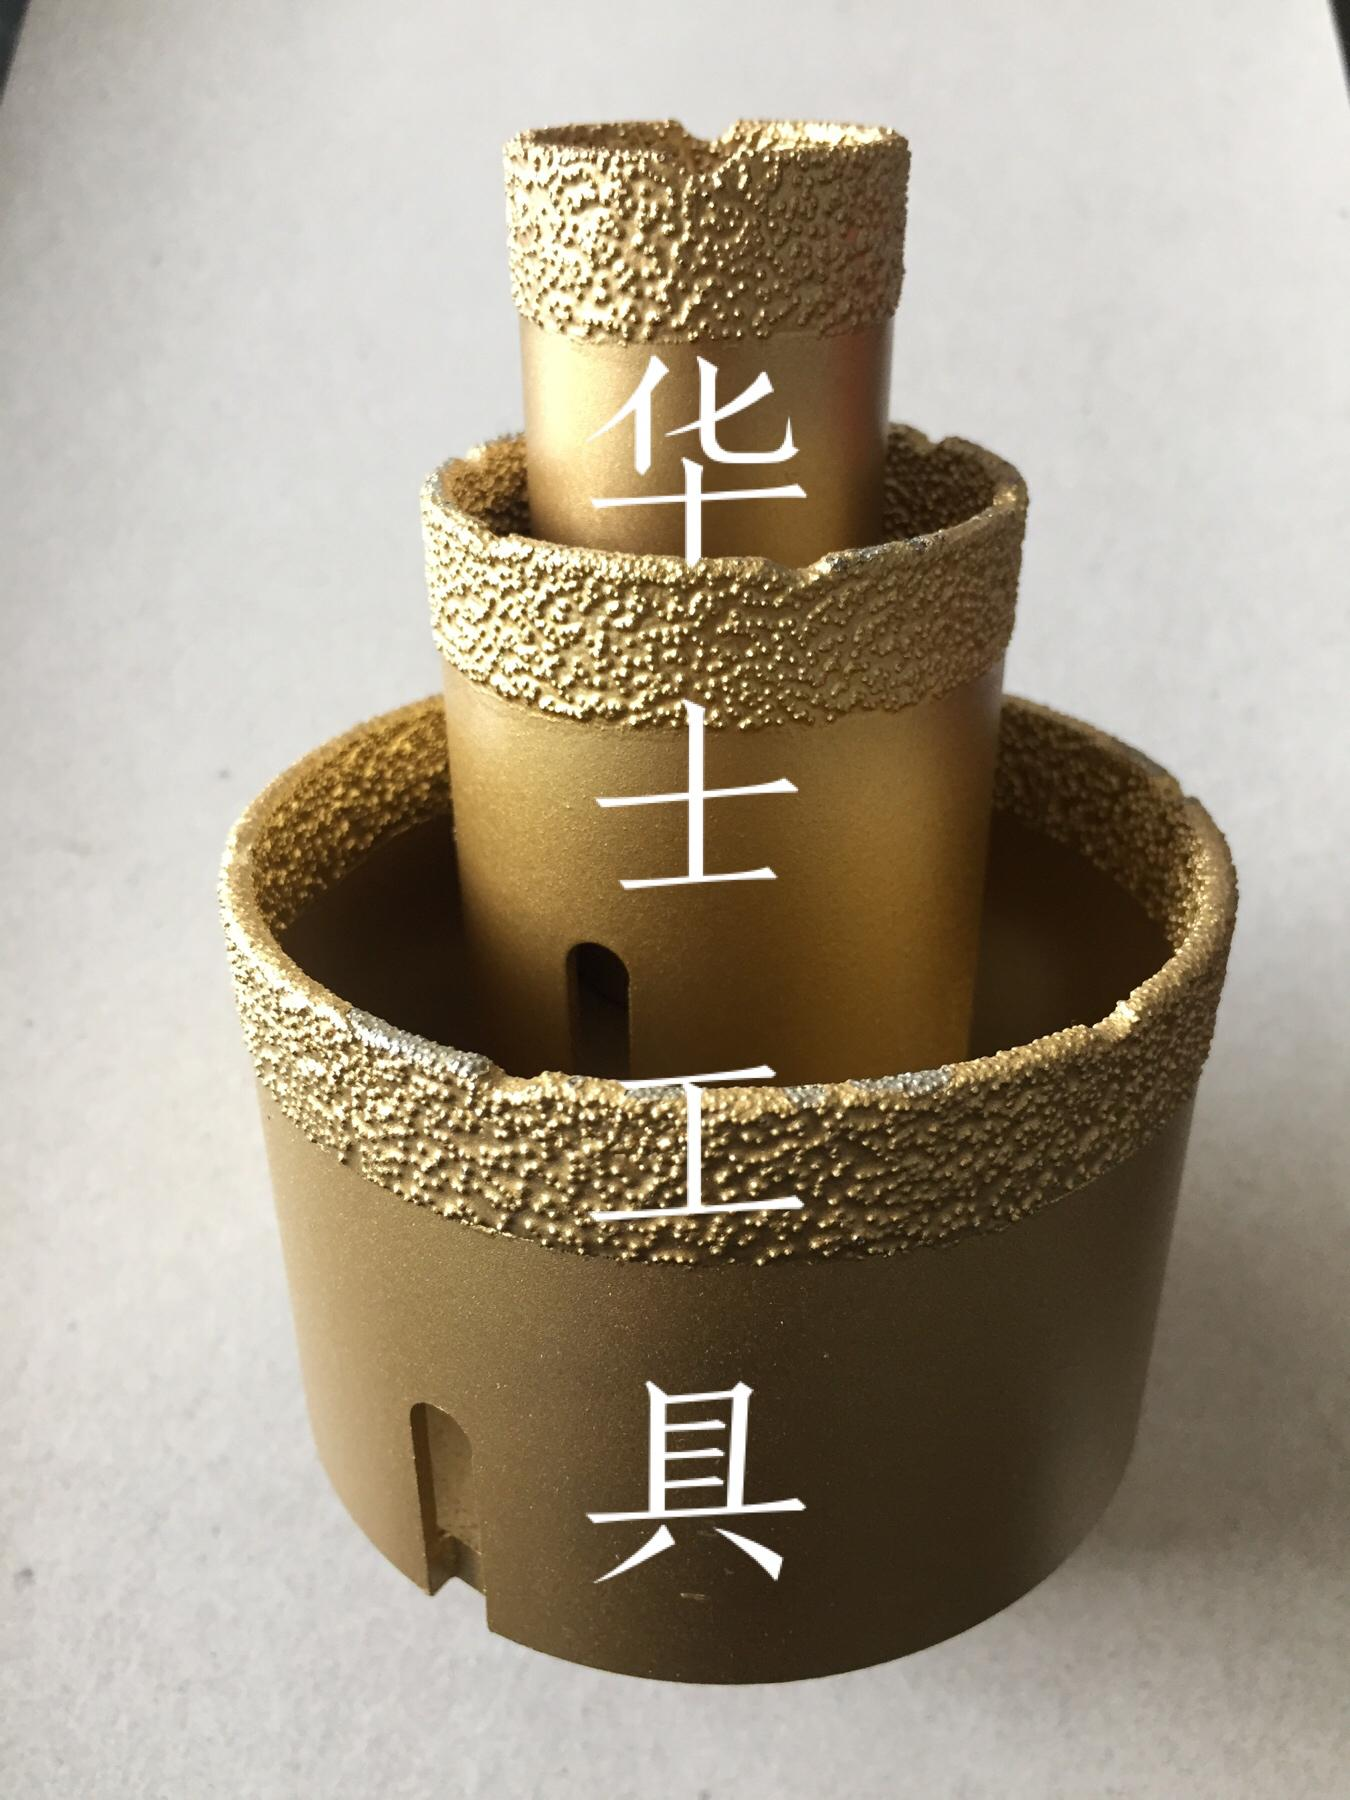 Ceramic tiles-Vb core bit for ceramic 4